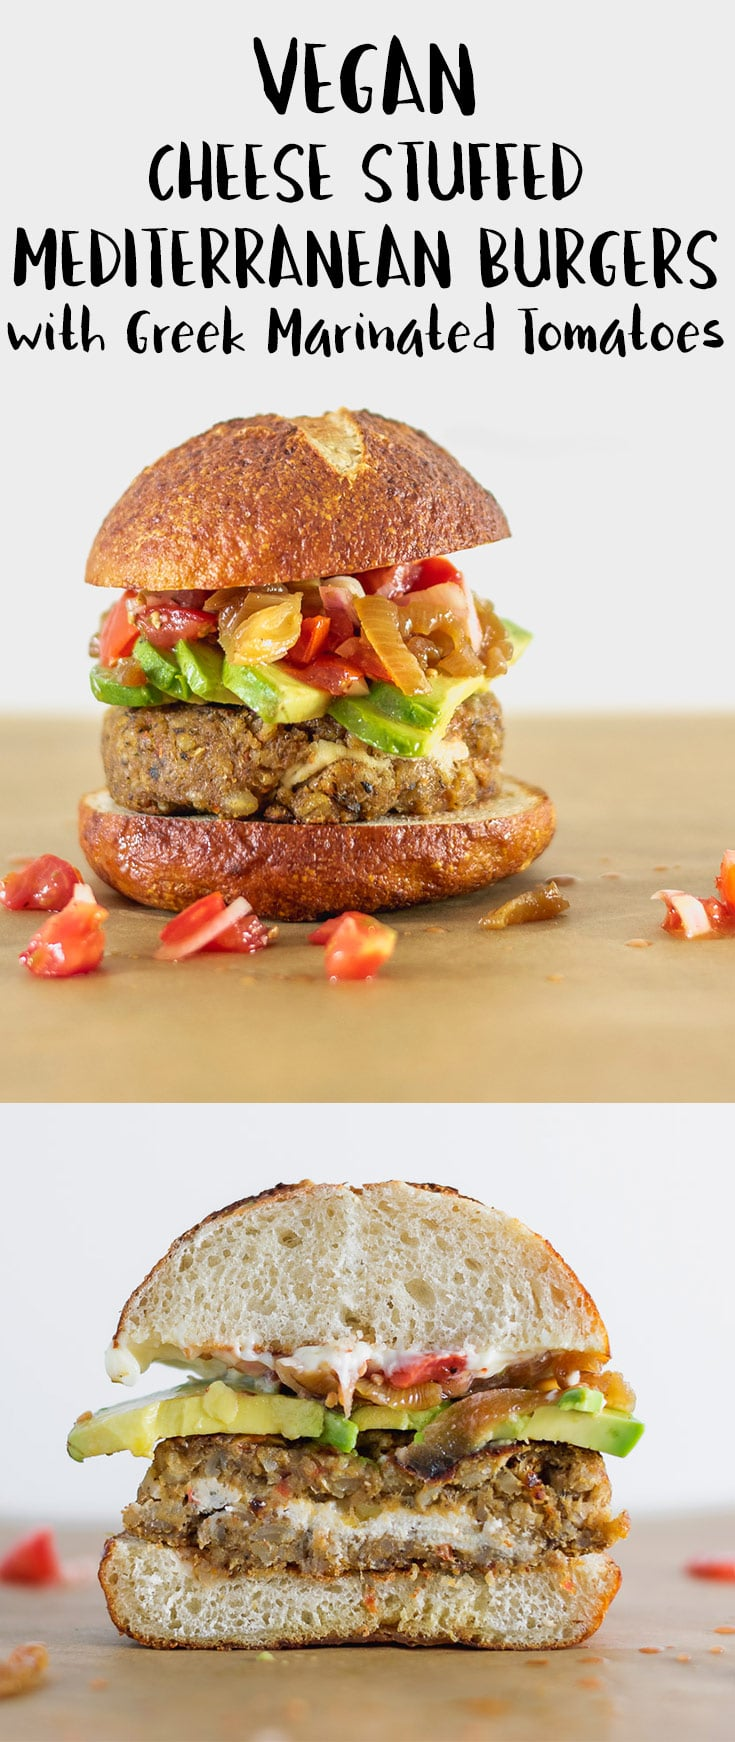 These chewy, juicy vegan chickpea burgers are packed with mediterranean flavor, stuffed with almond cheese, and served with greek marinated tomatoes | thecuriouschickpea.com #vegan #veganburger #veggieburger